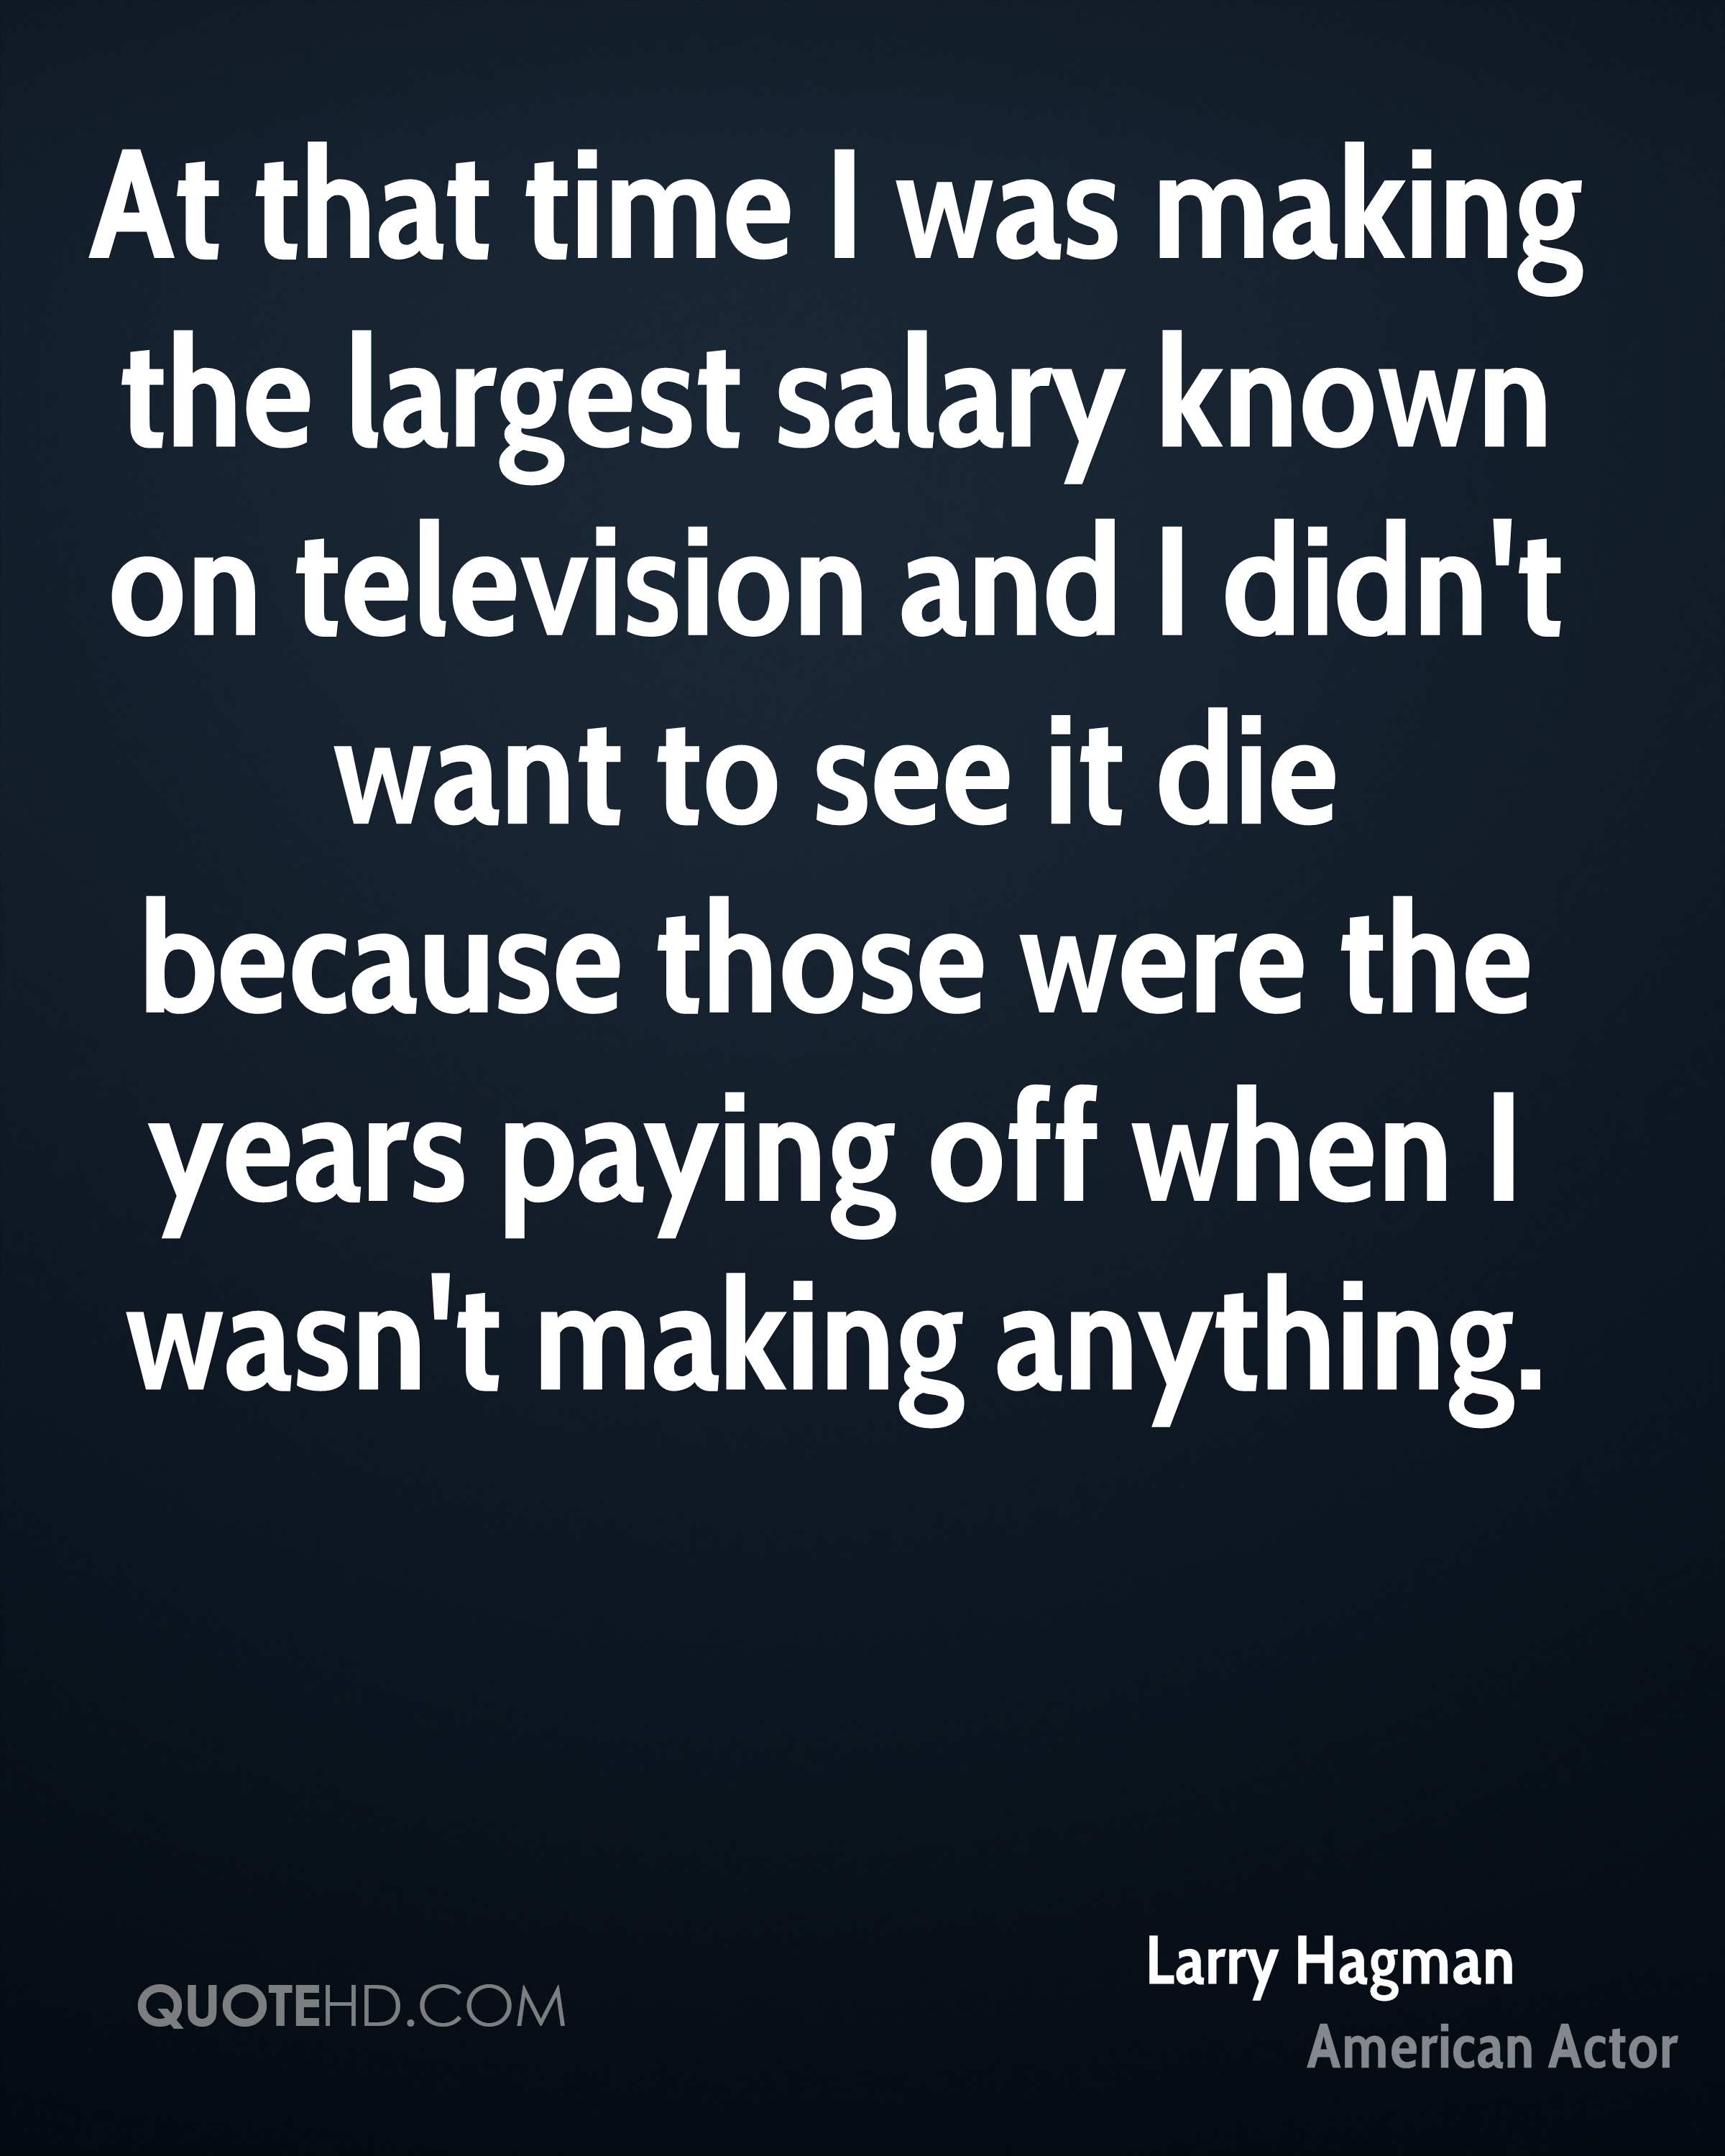 At that time I was making the largest salary known on television and I didn't want to see it die because those were the years paying off when I wasn't making anything.